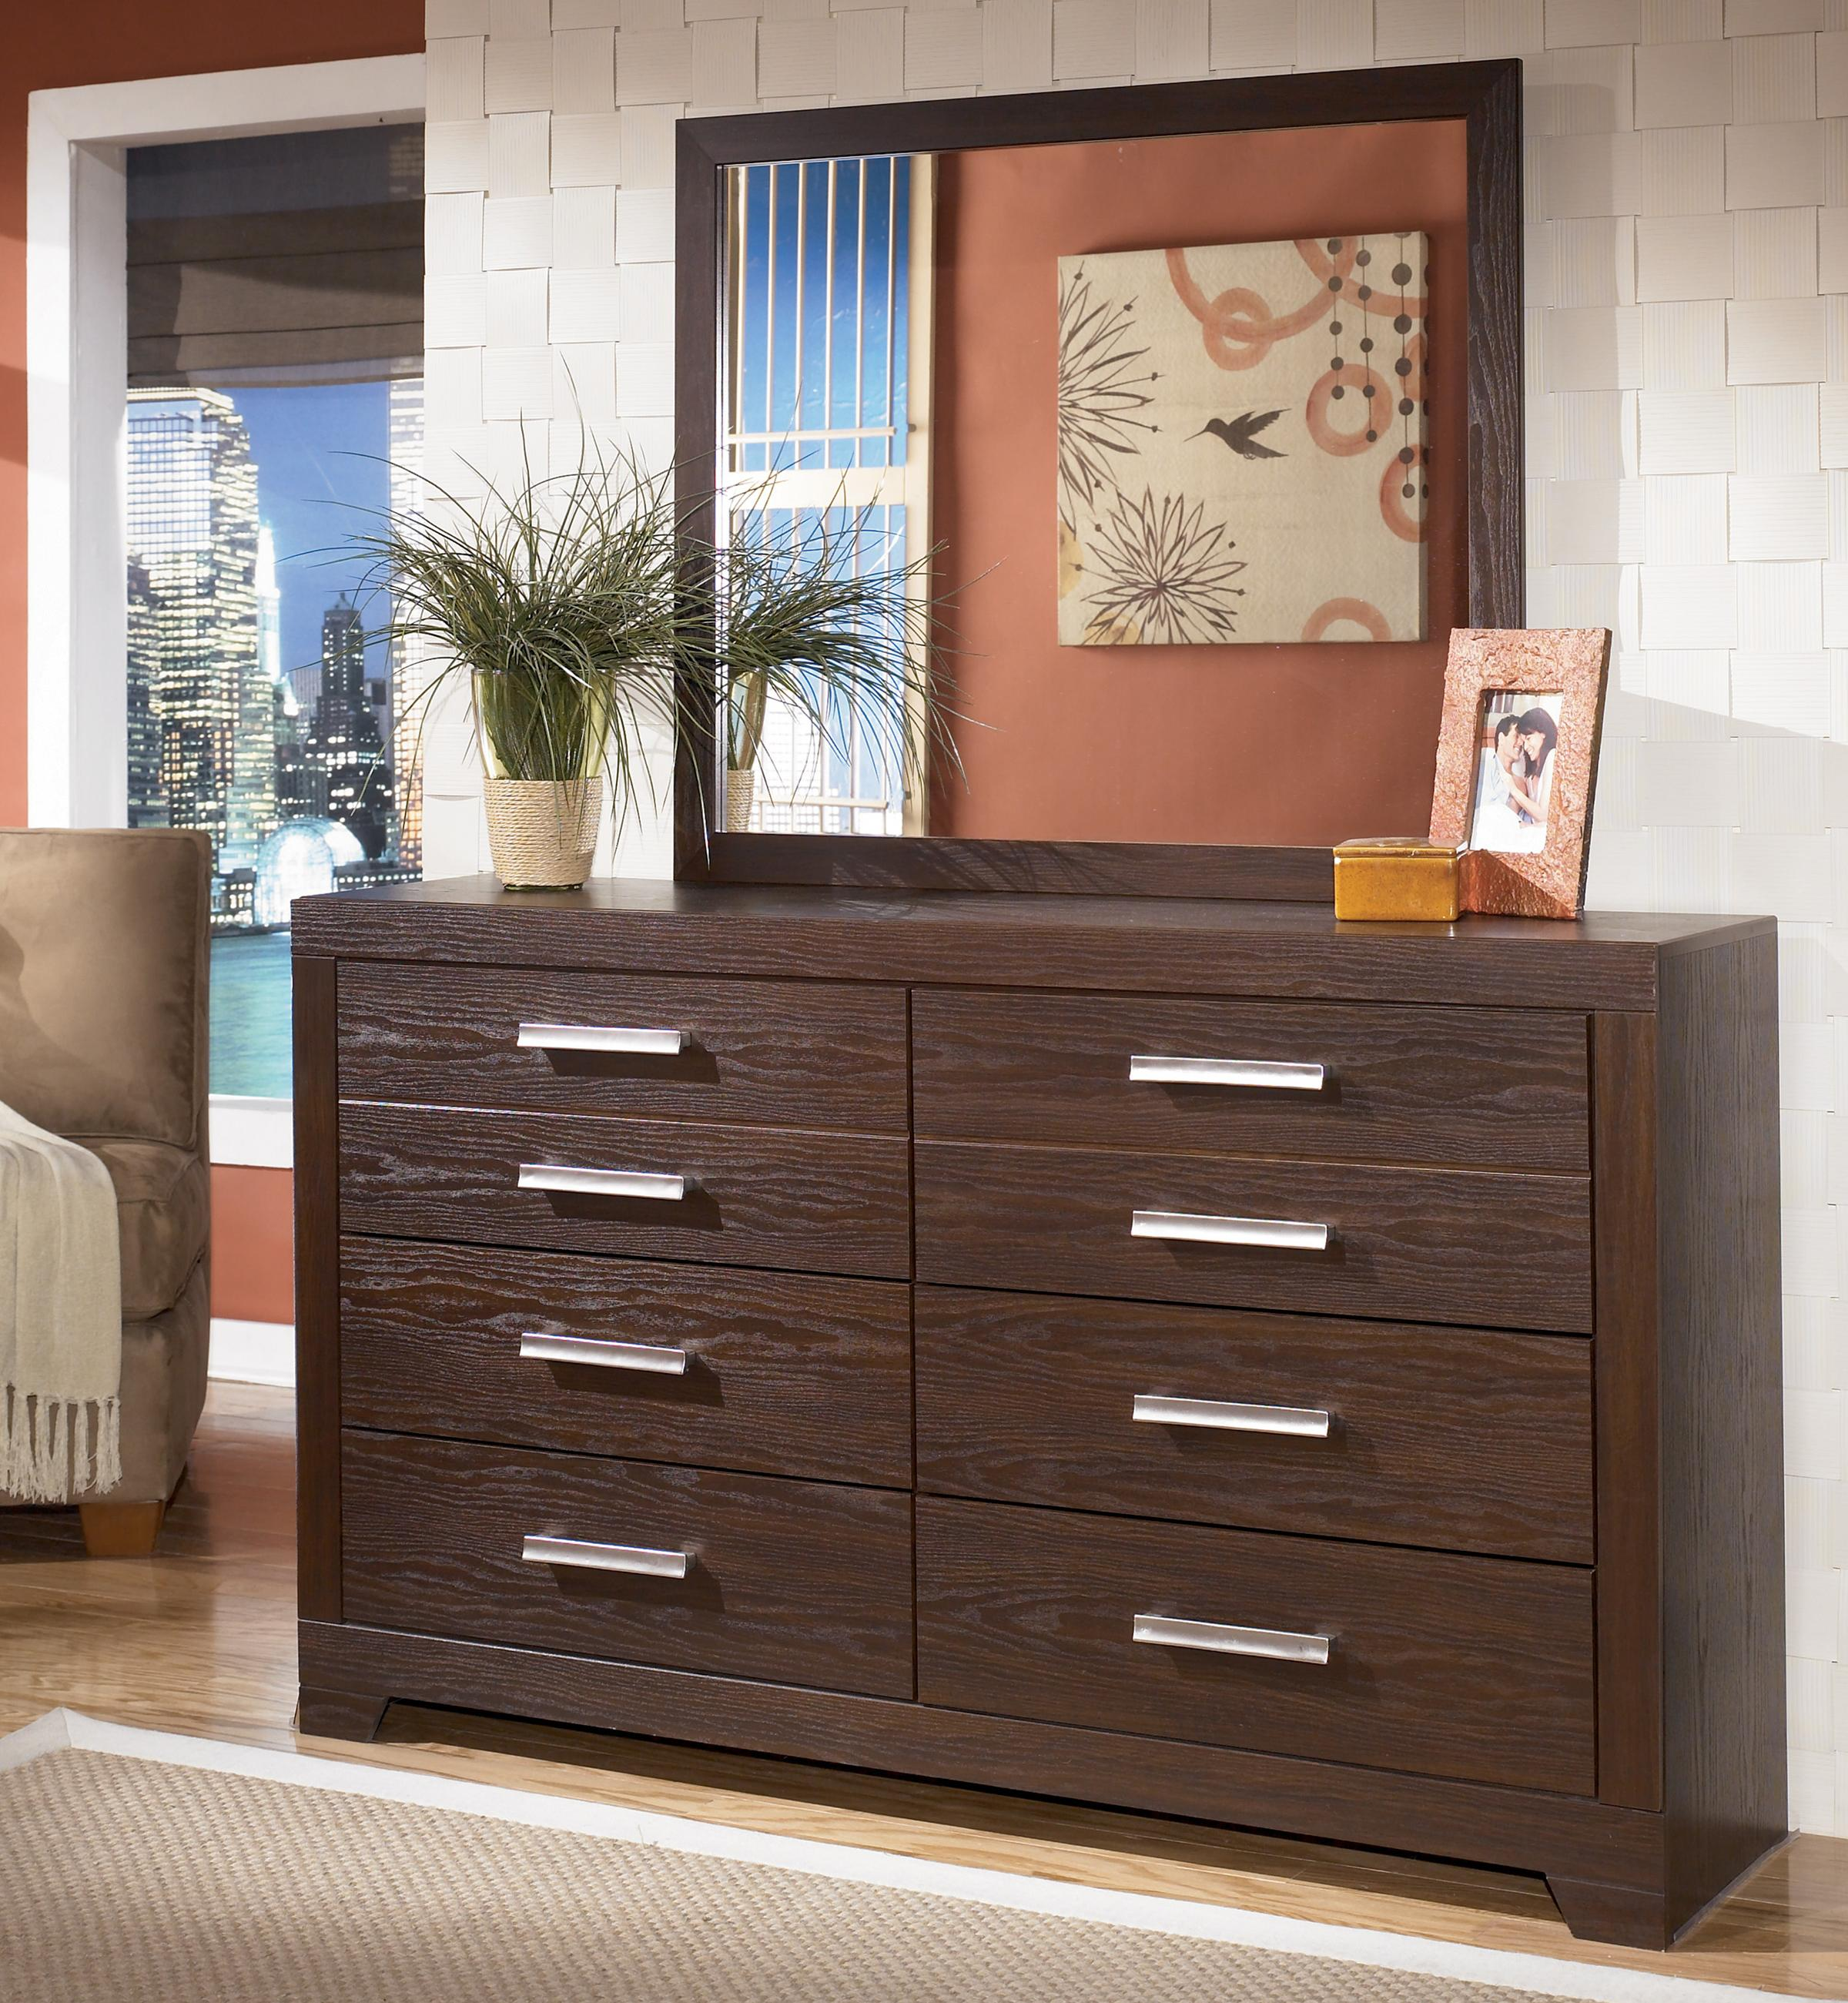 Signature Design by Ashley Aleydis Dresser & Mirror - Item Number: B165-31+36